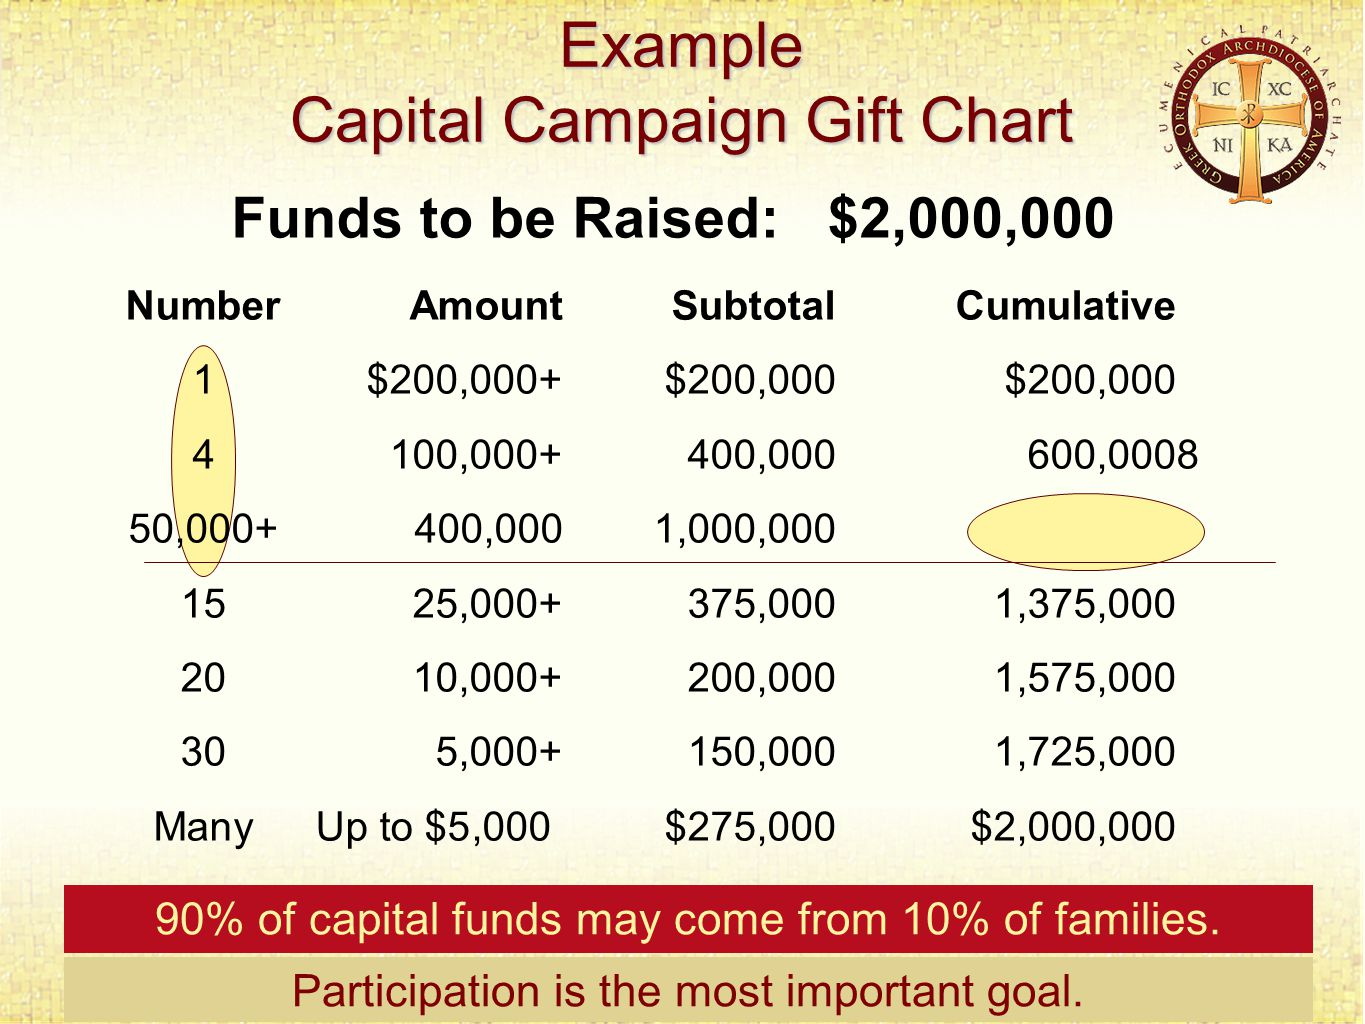 Example Capital Campaign Gift Chart Participation is the most important goal.